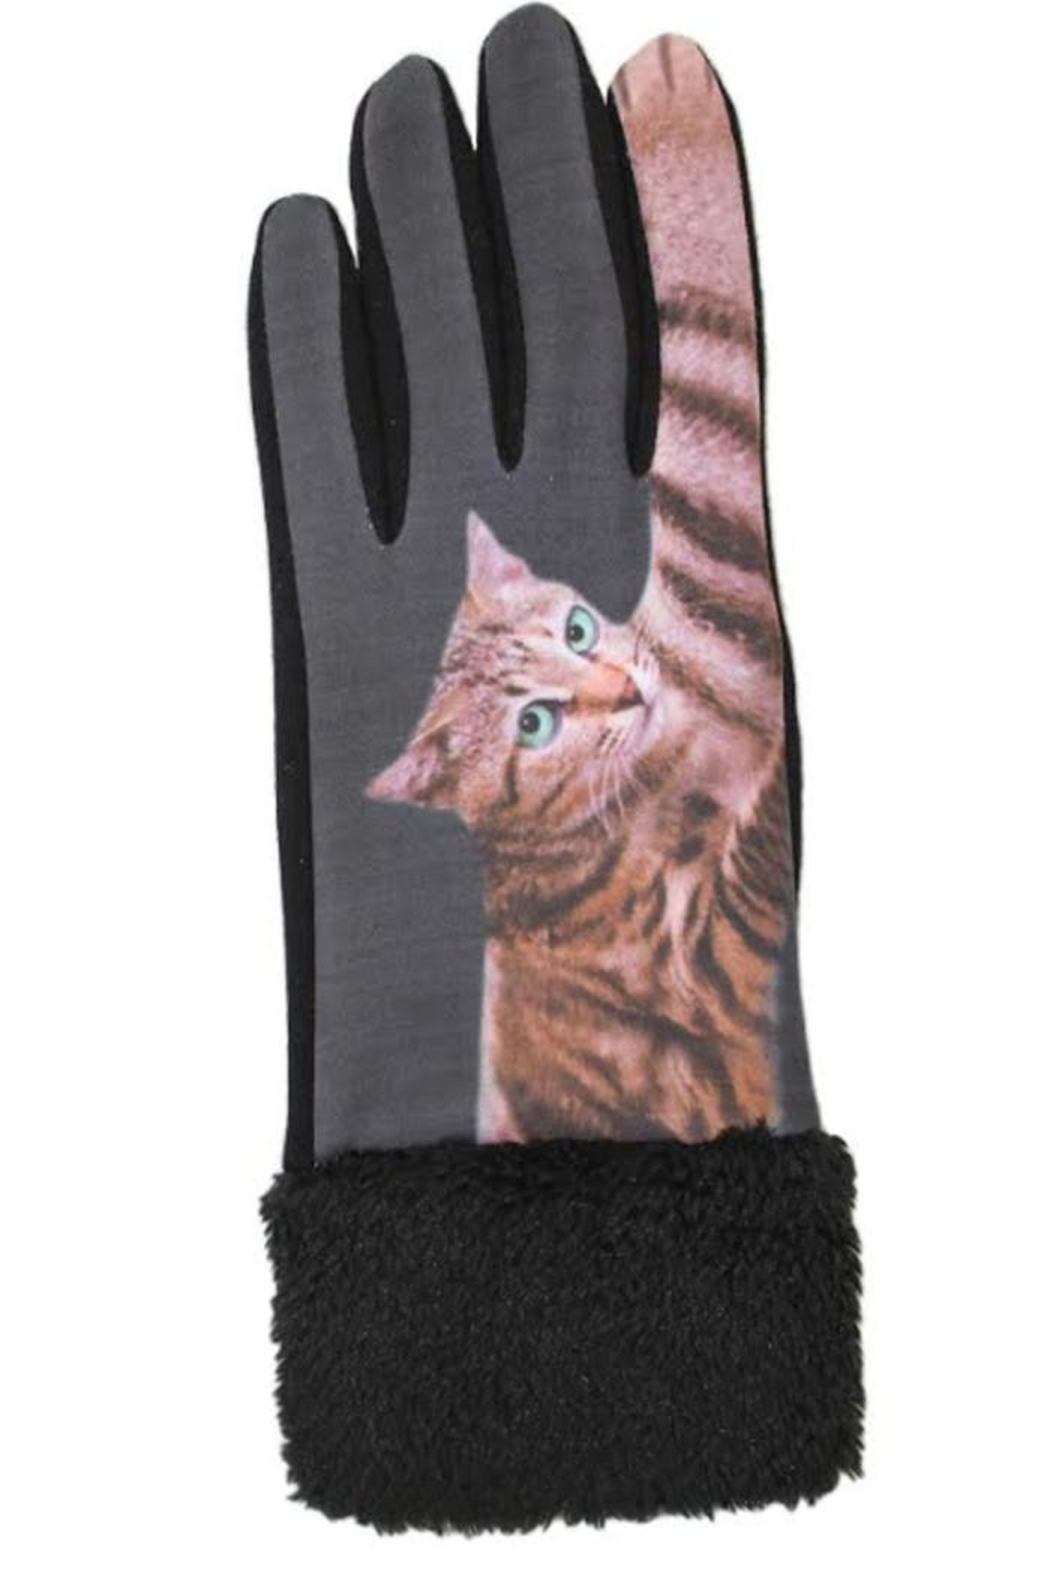 ed5bcc36b0f93c Jeanne Simmons Faux-Fur Cat Gloves from Omaha by Souq Ltq